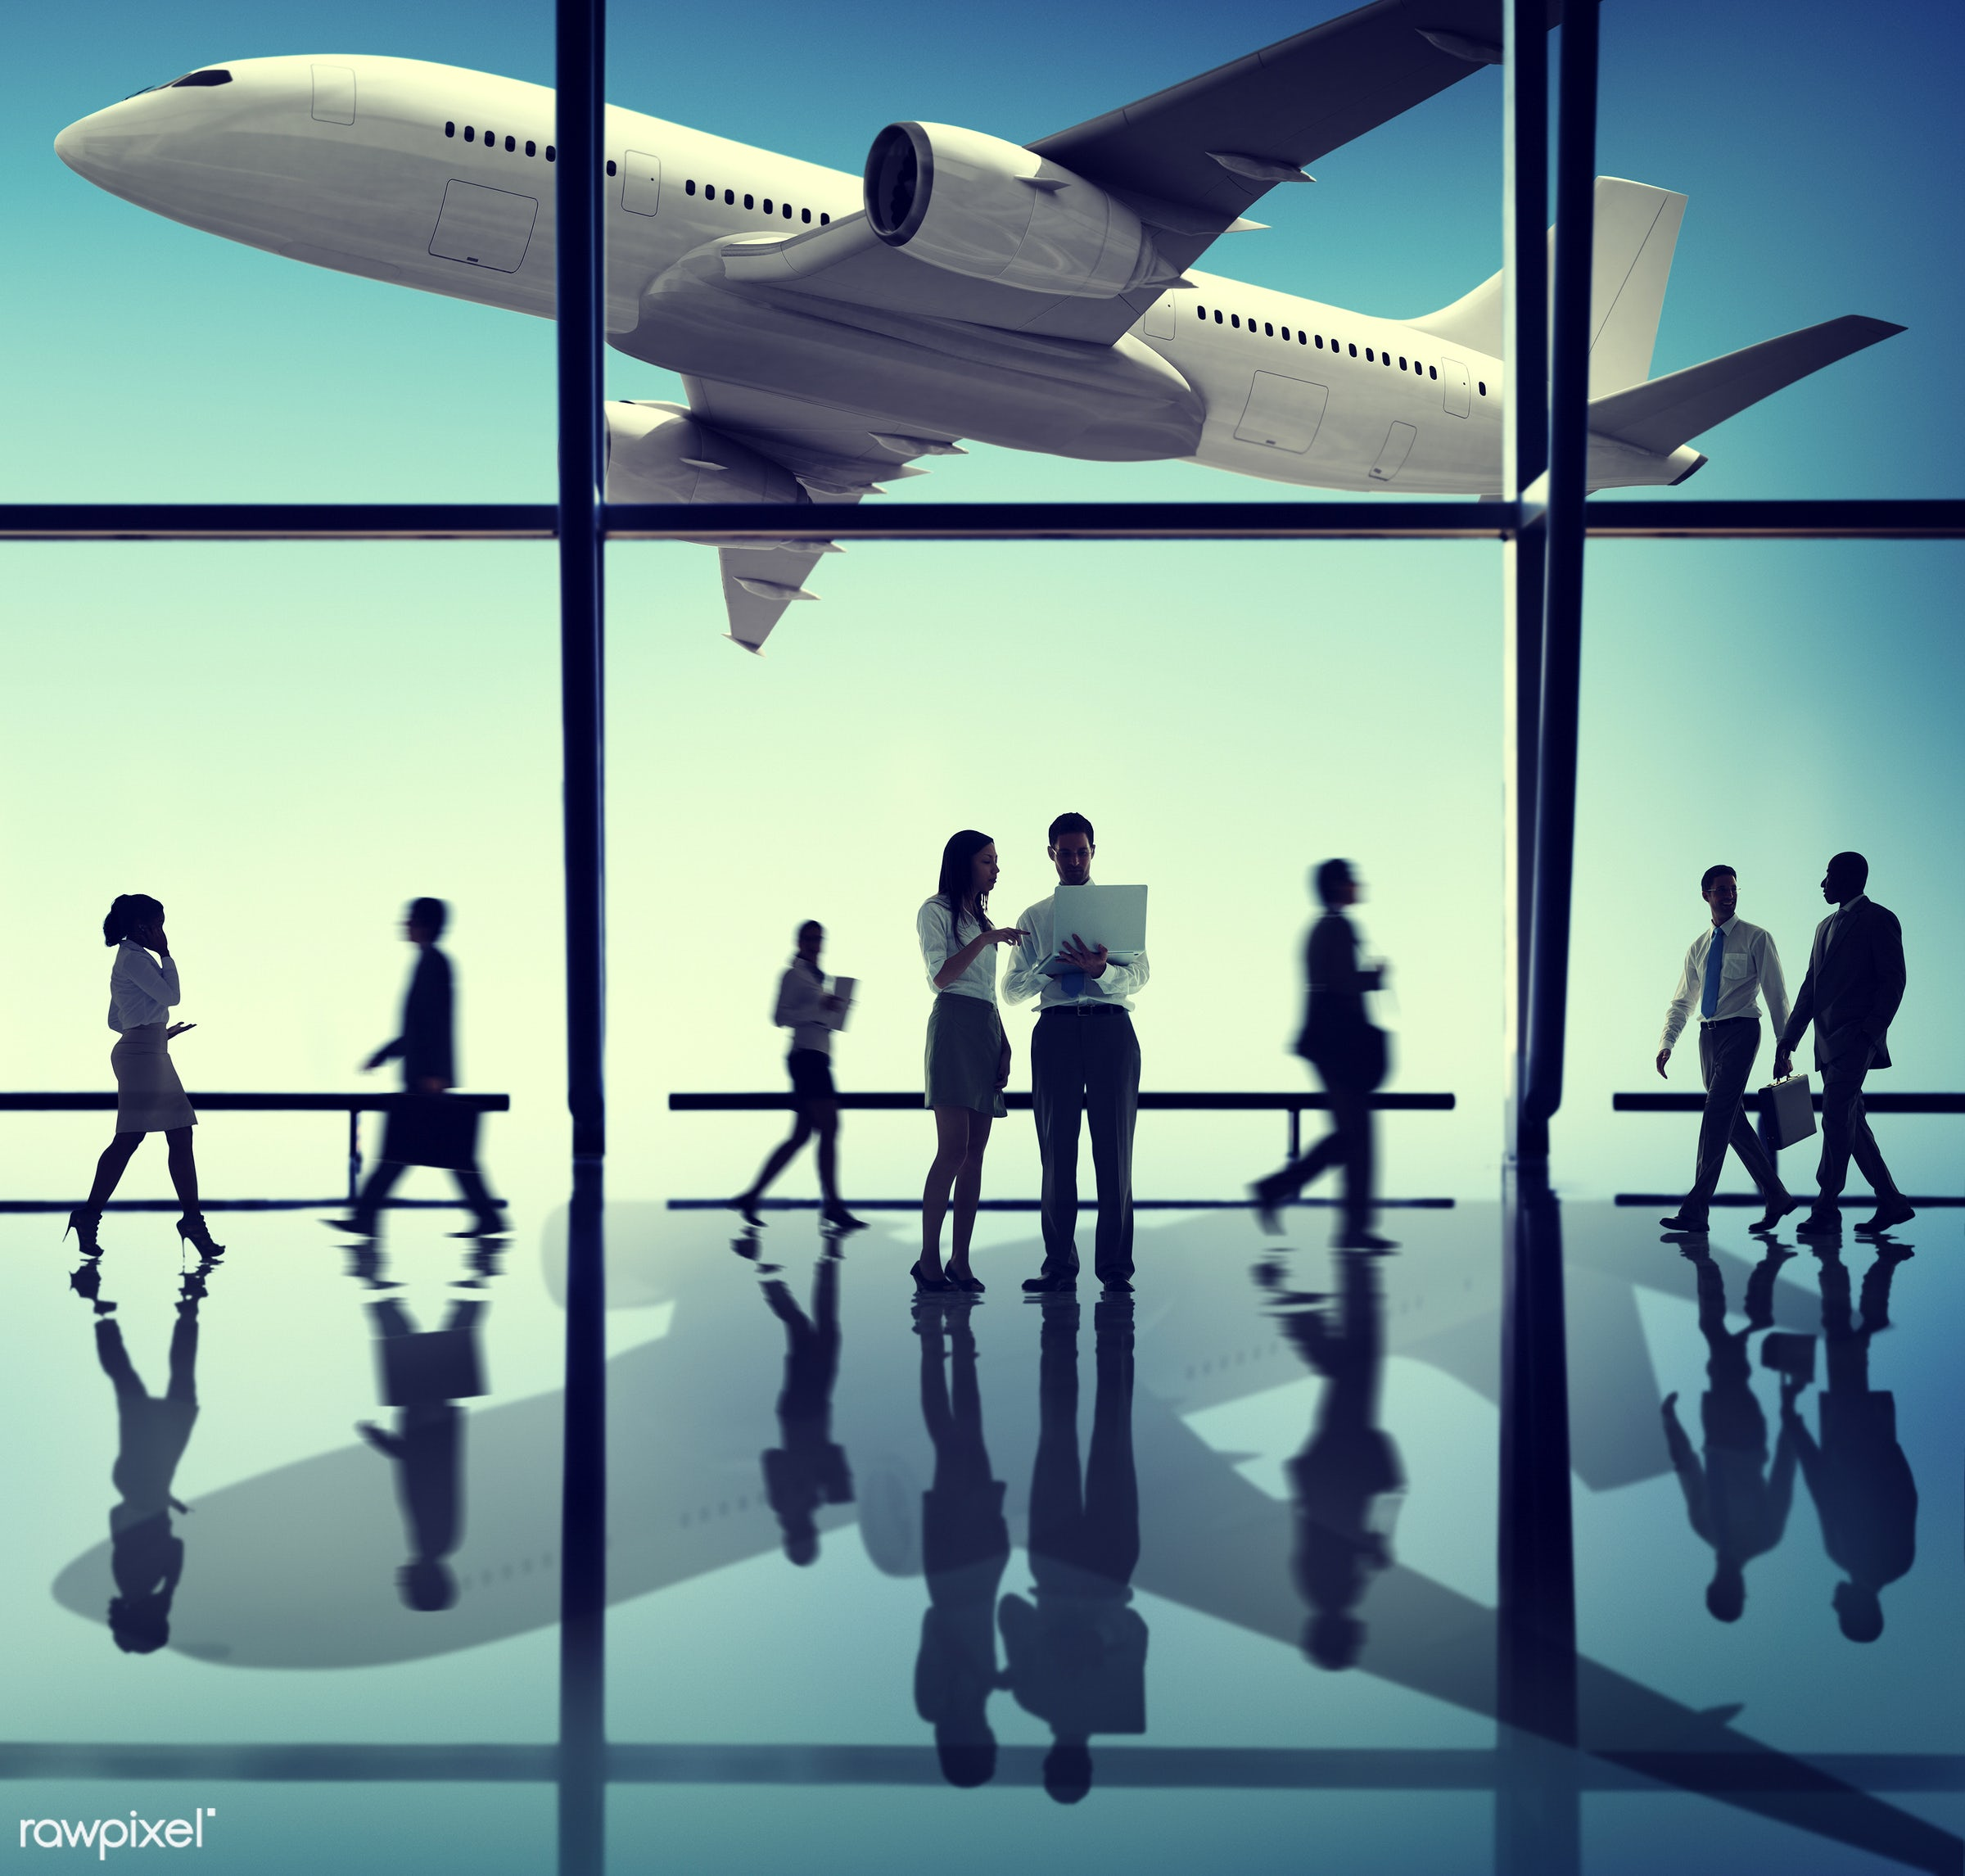 aircraft, airplane, airport, arrival, backlit, blurred motion, business, business people, businessmen, businesswomen,...